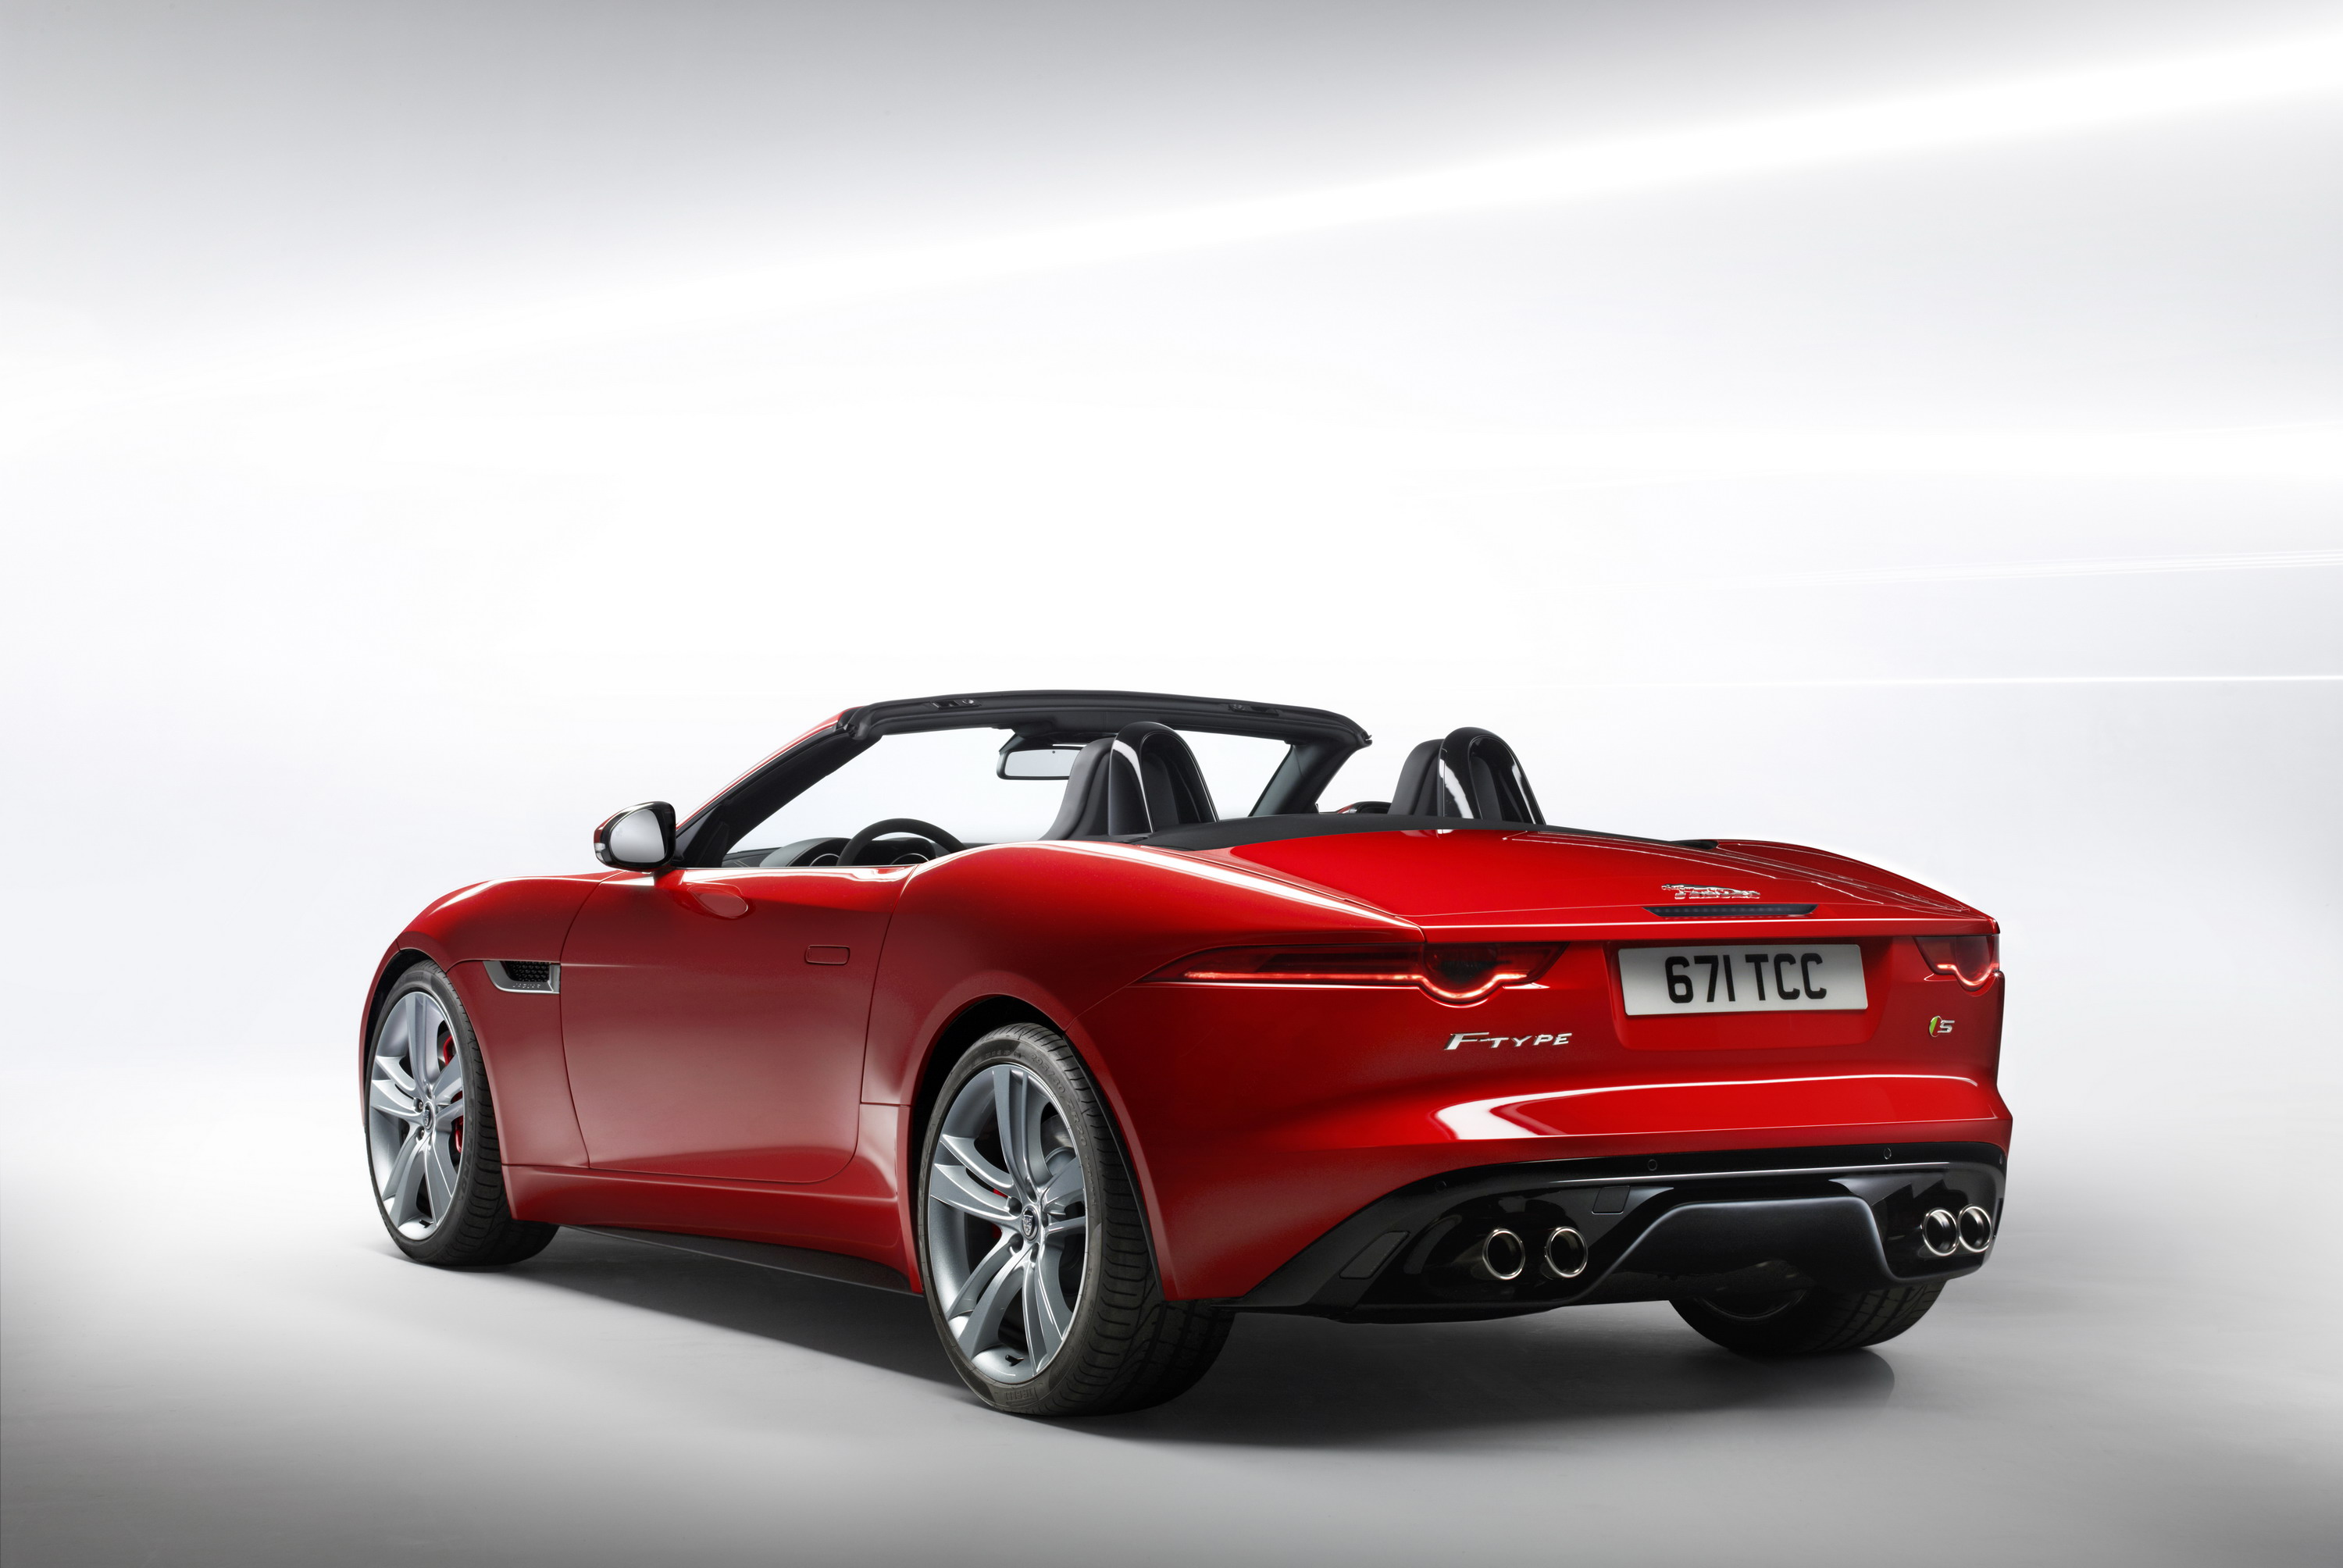 Attrayant 2013 Jaguar F Type Roadster Review   Top Speed. »